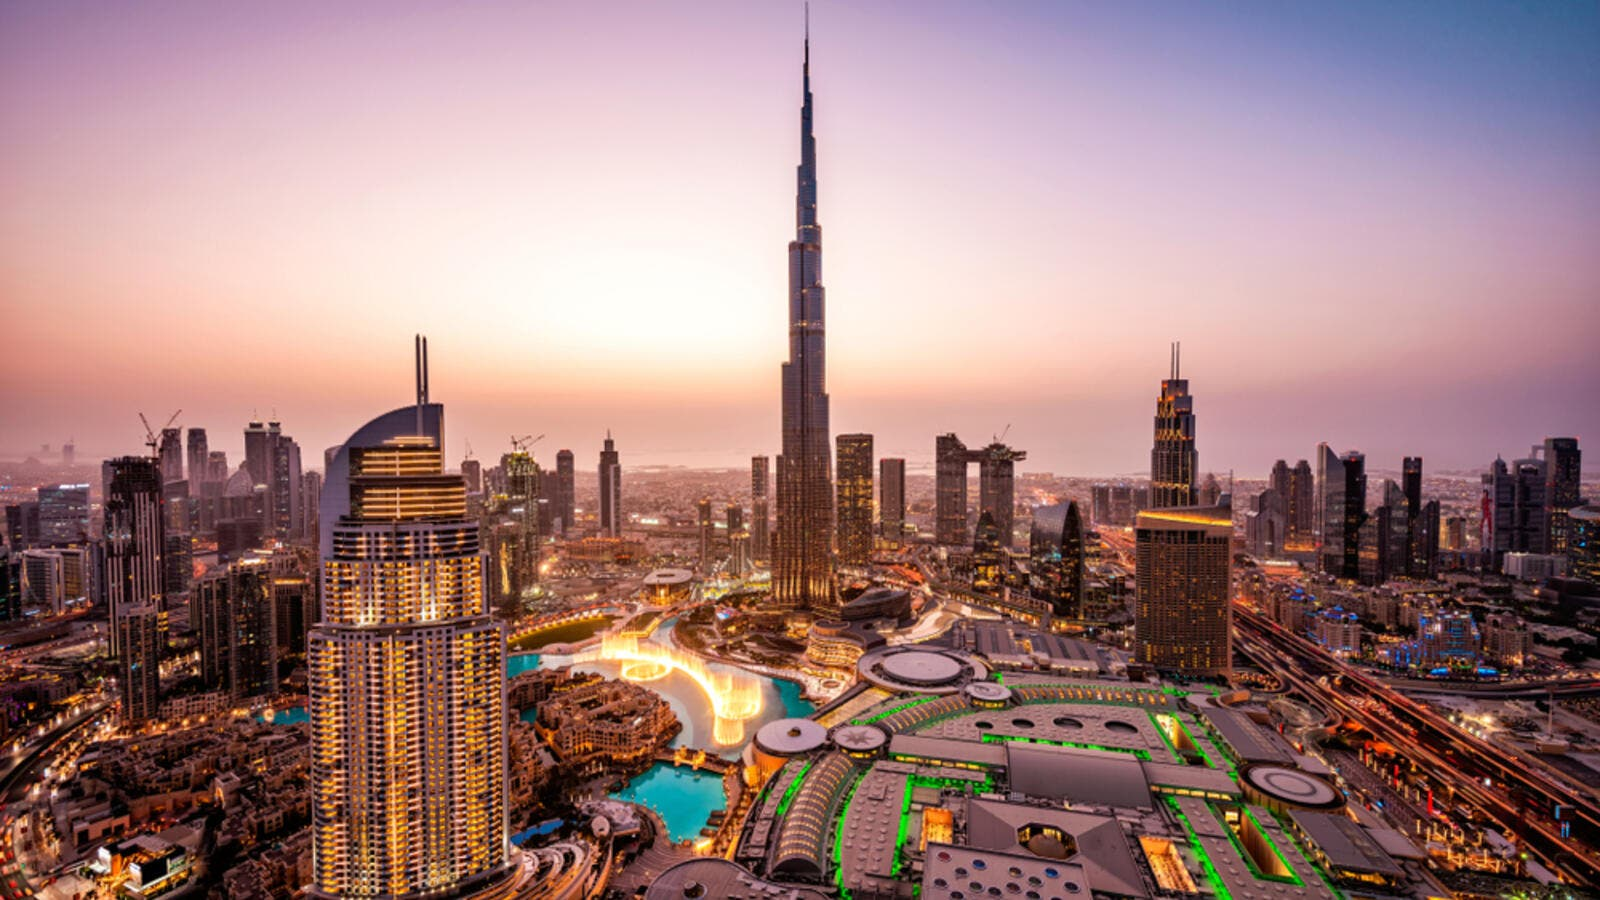 Dubai: No Commercial Activities Until April 18